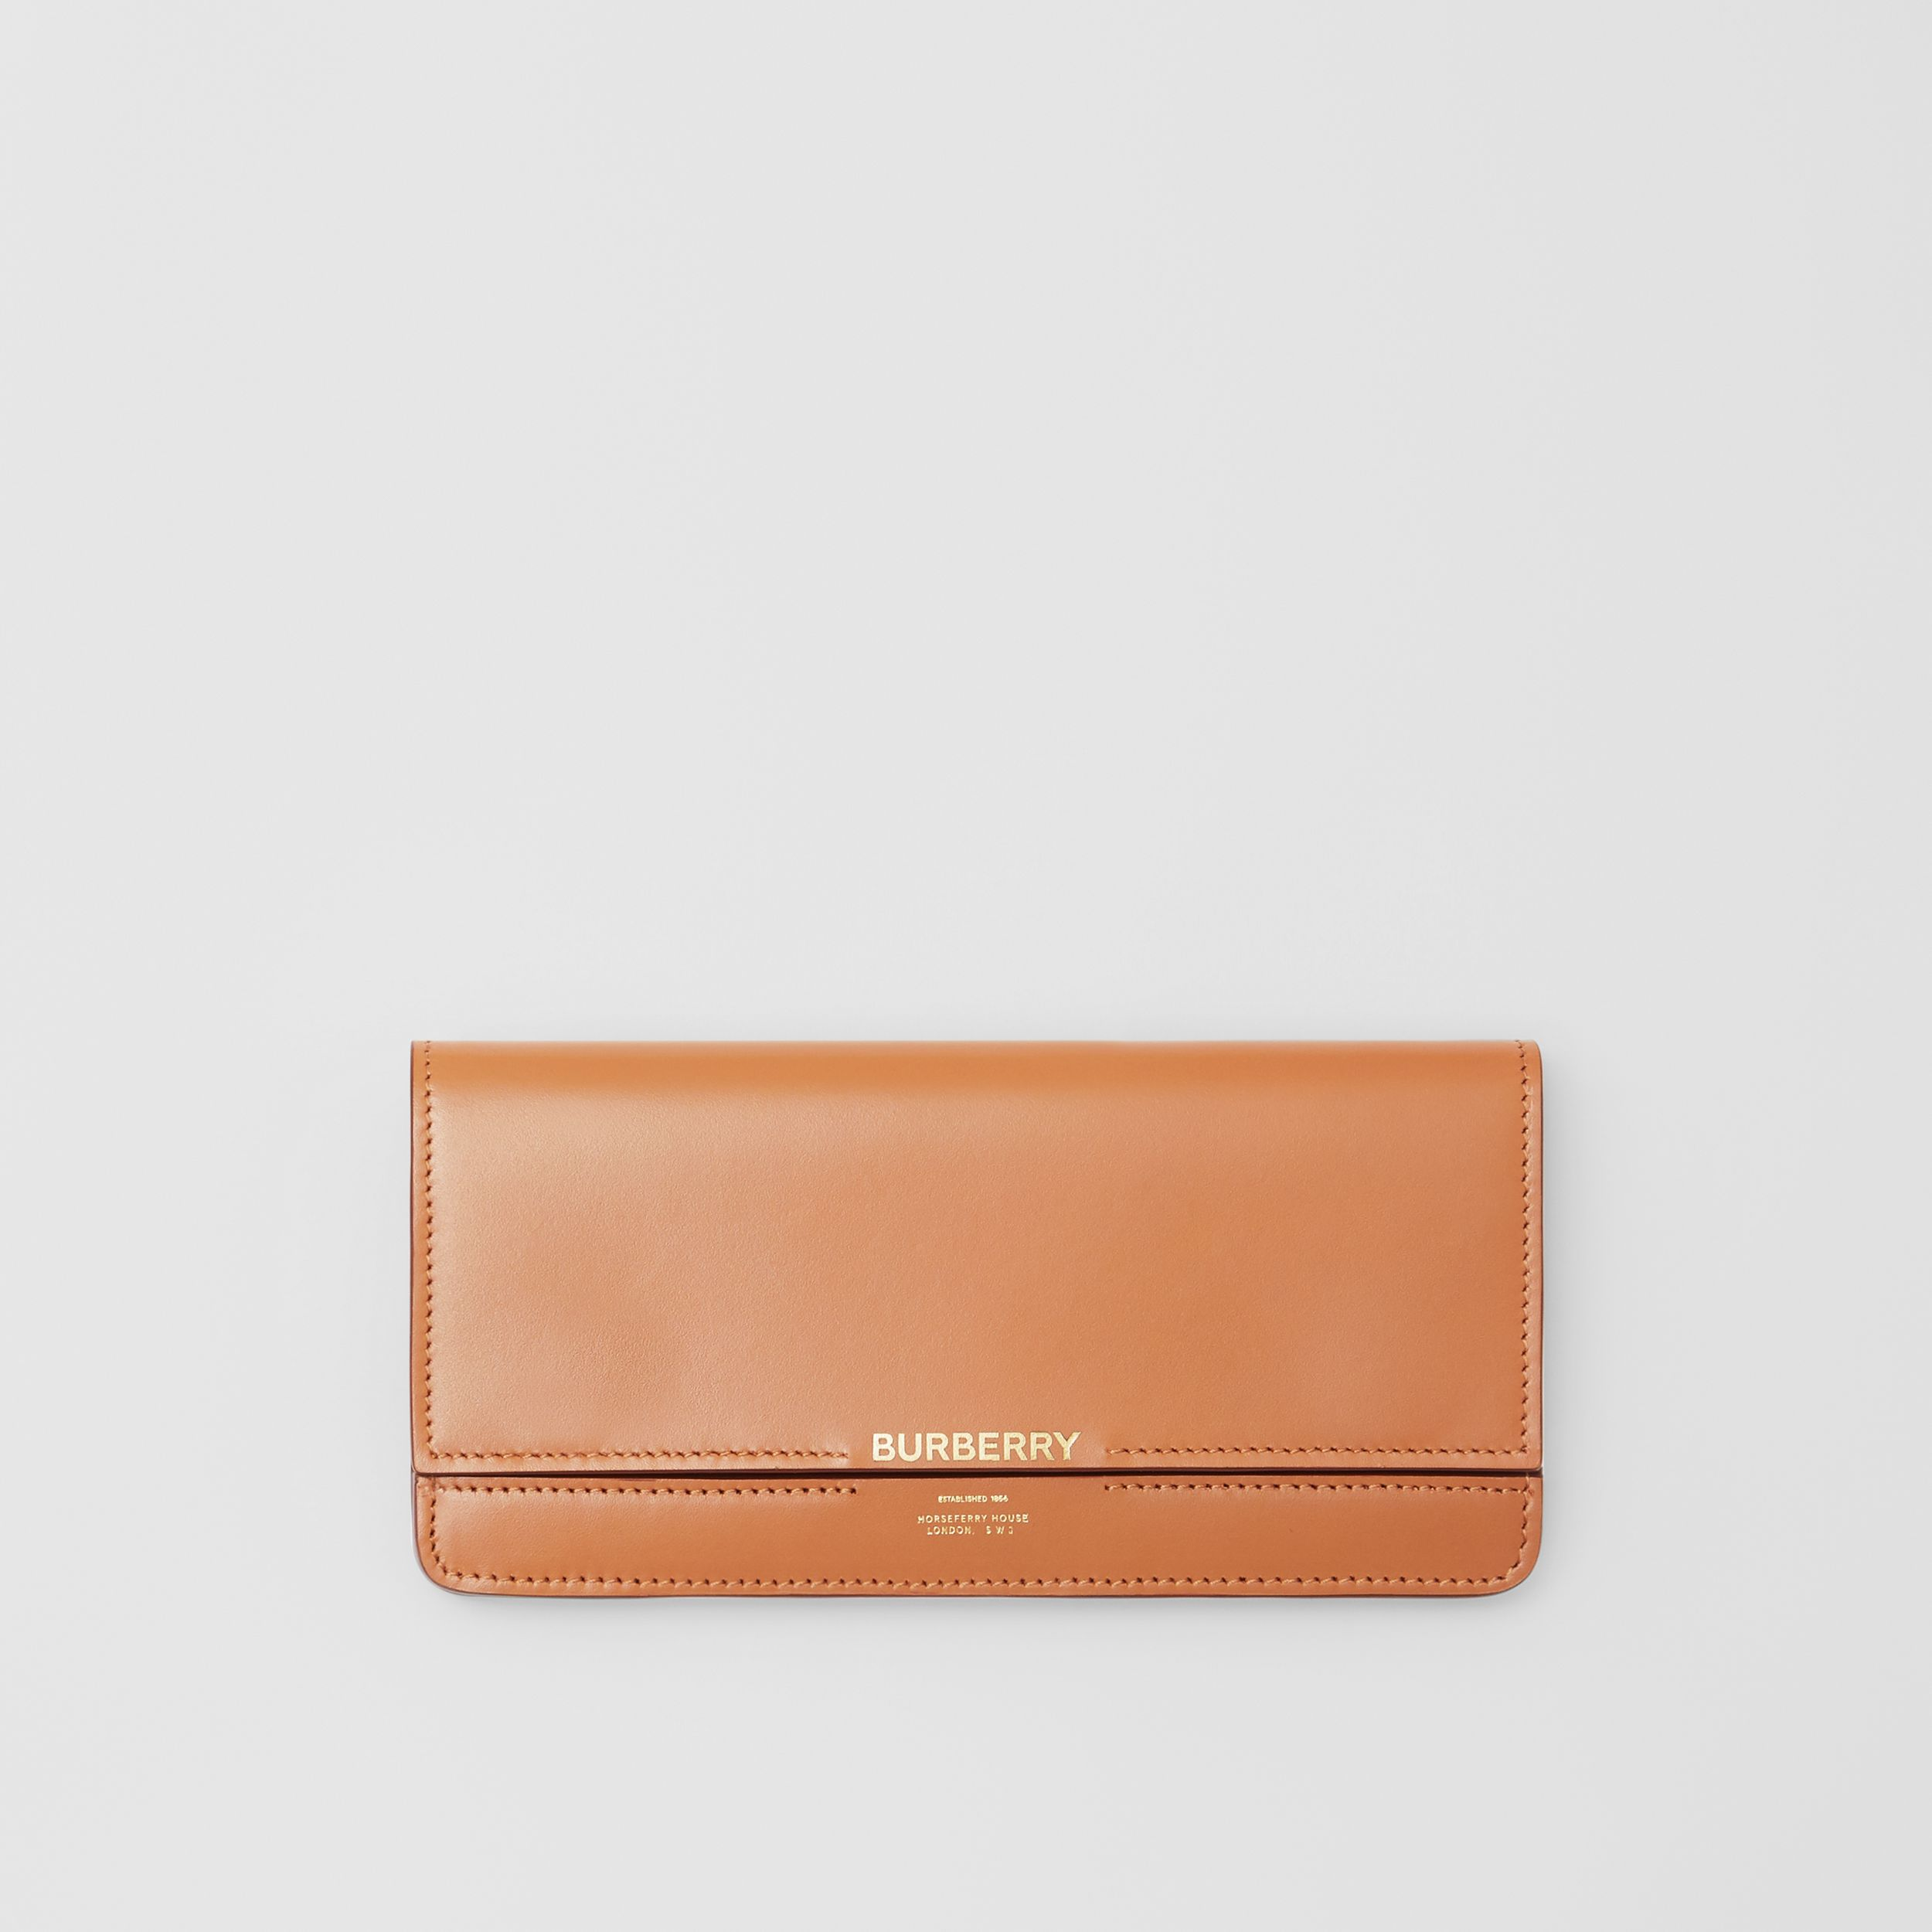 Horseferry Embossed Leather Continental Wallet in Nutmeg - Women | Burberry Canada - 1